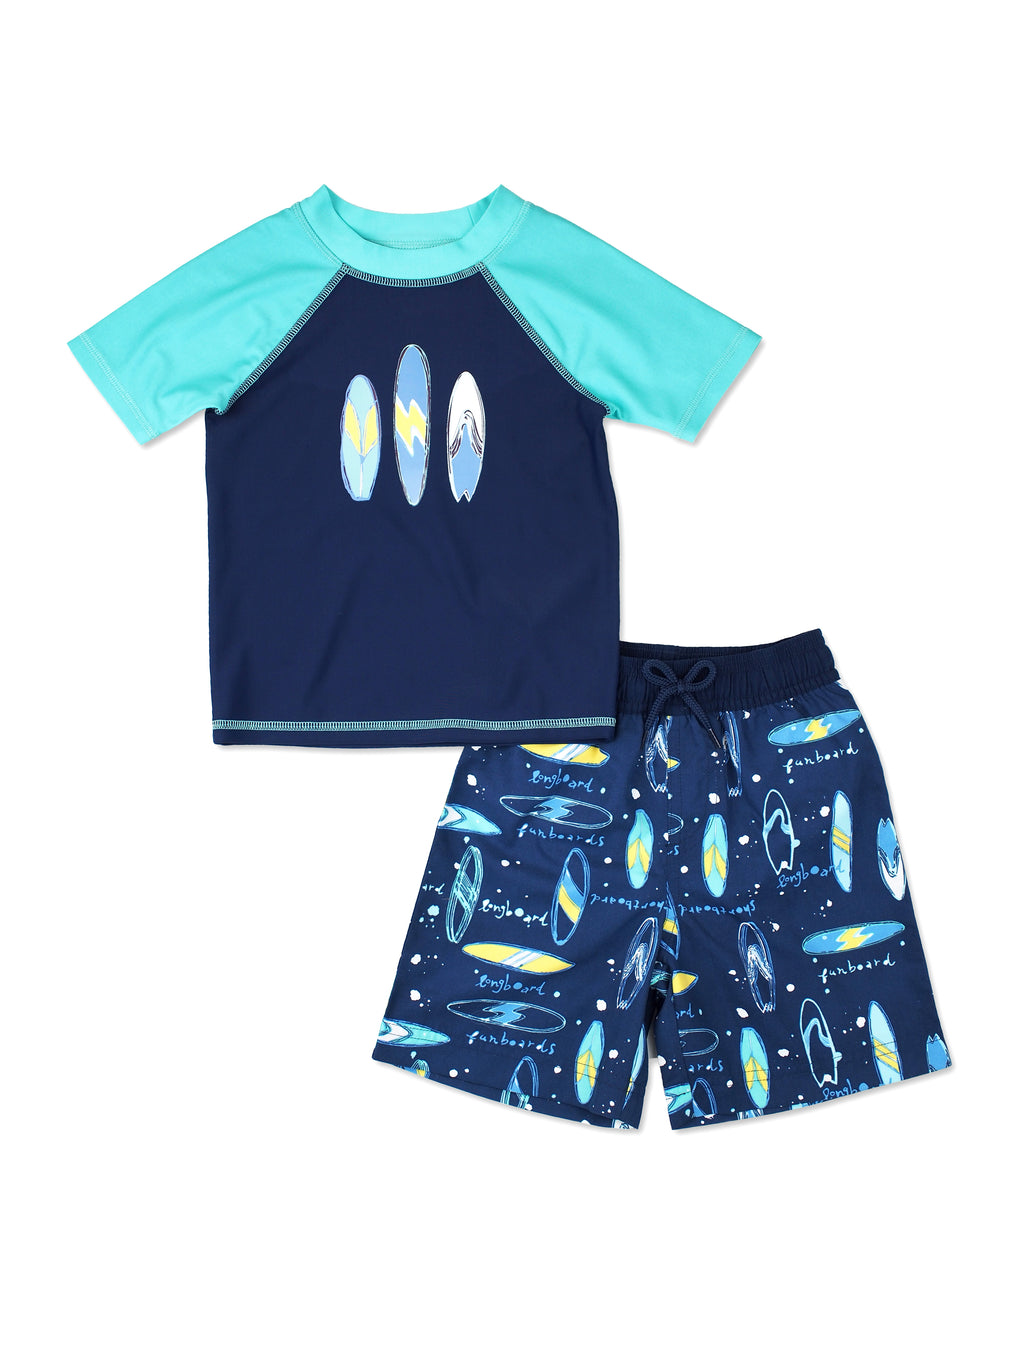 Boys Surfboard Short Sleeve Rash Guard & Swim Trunks Set, Navy